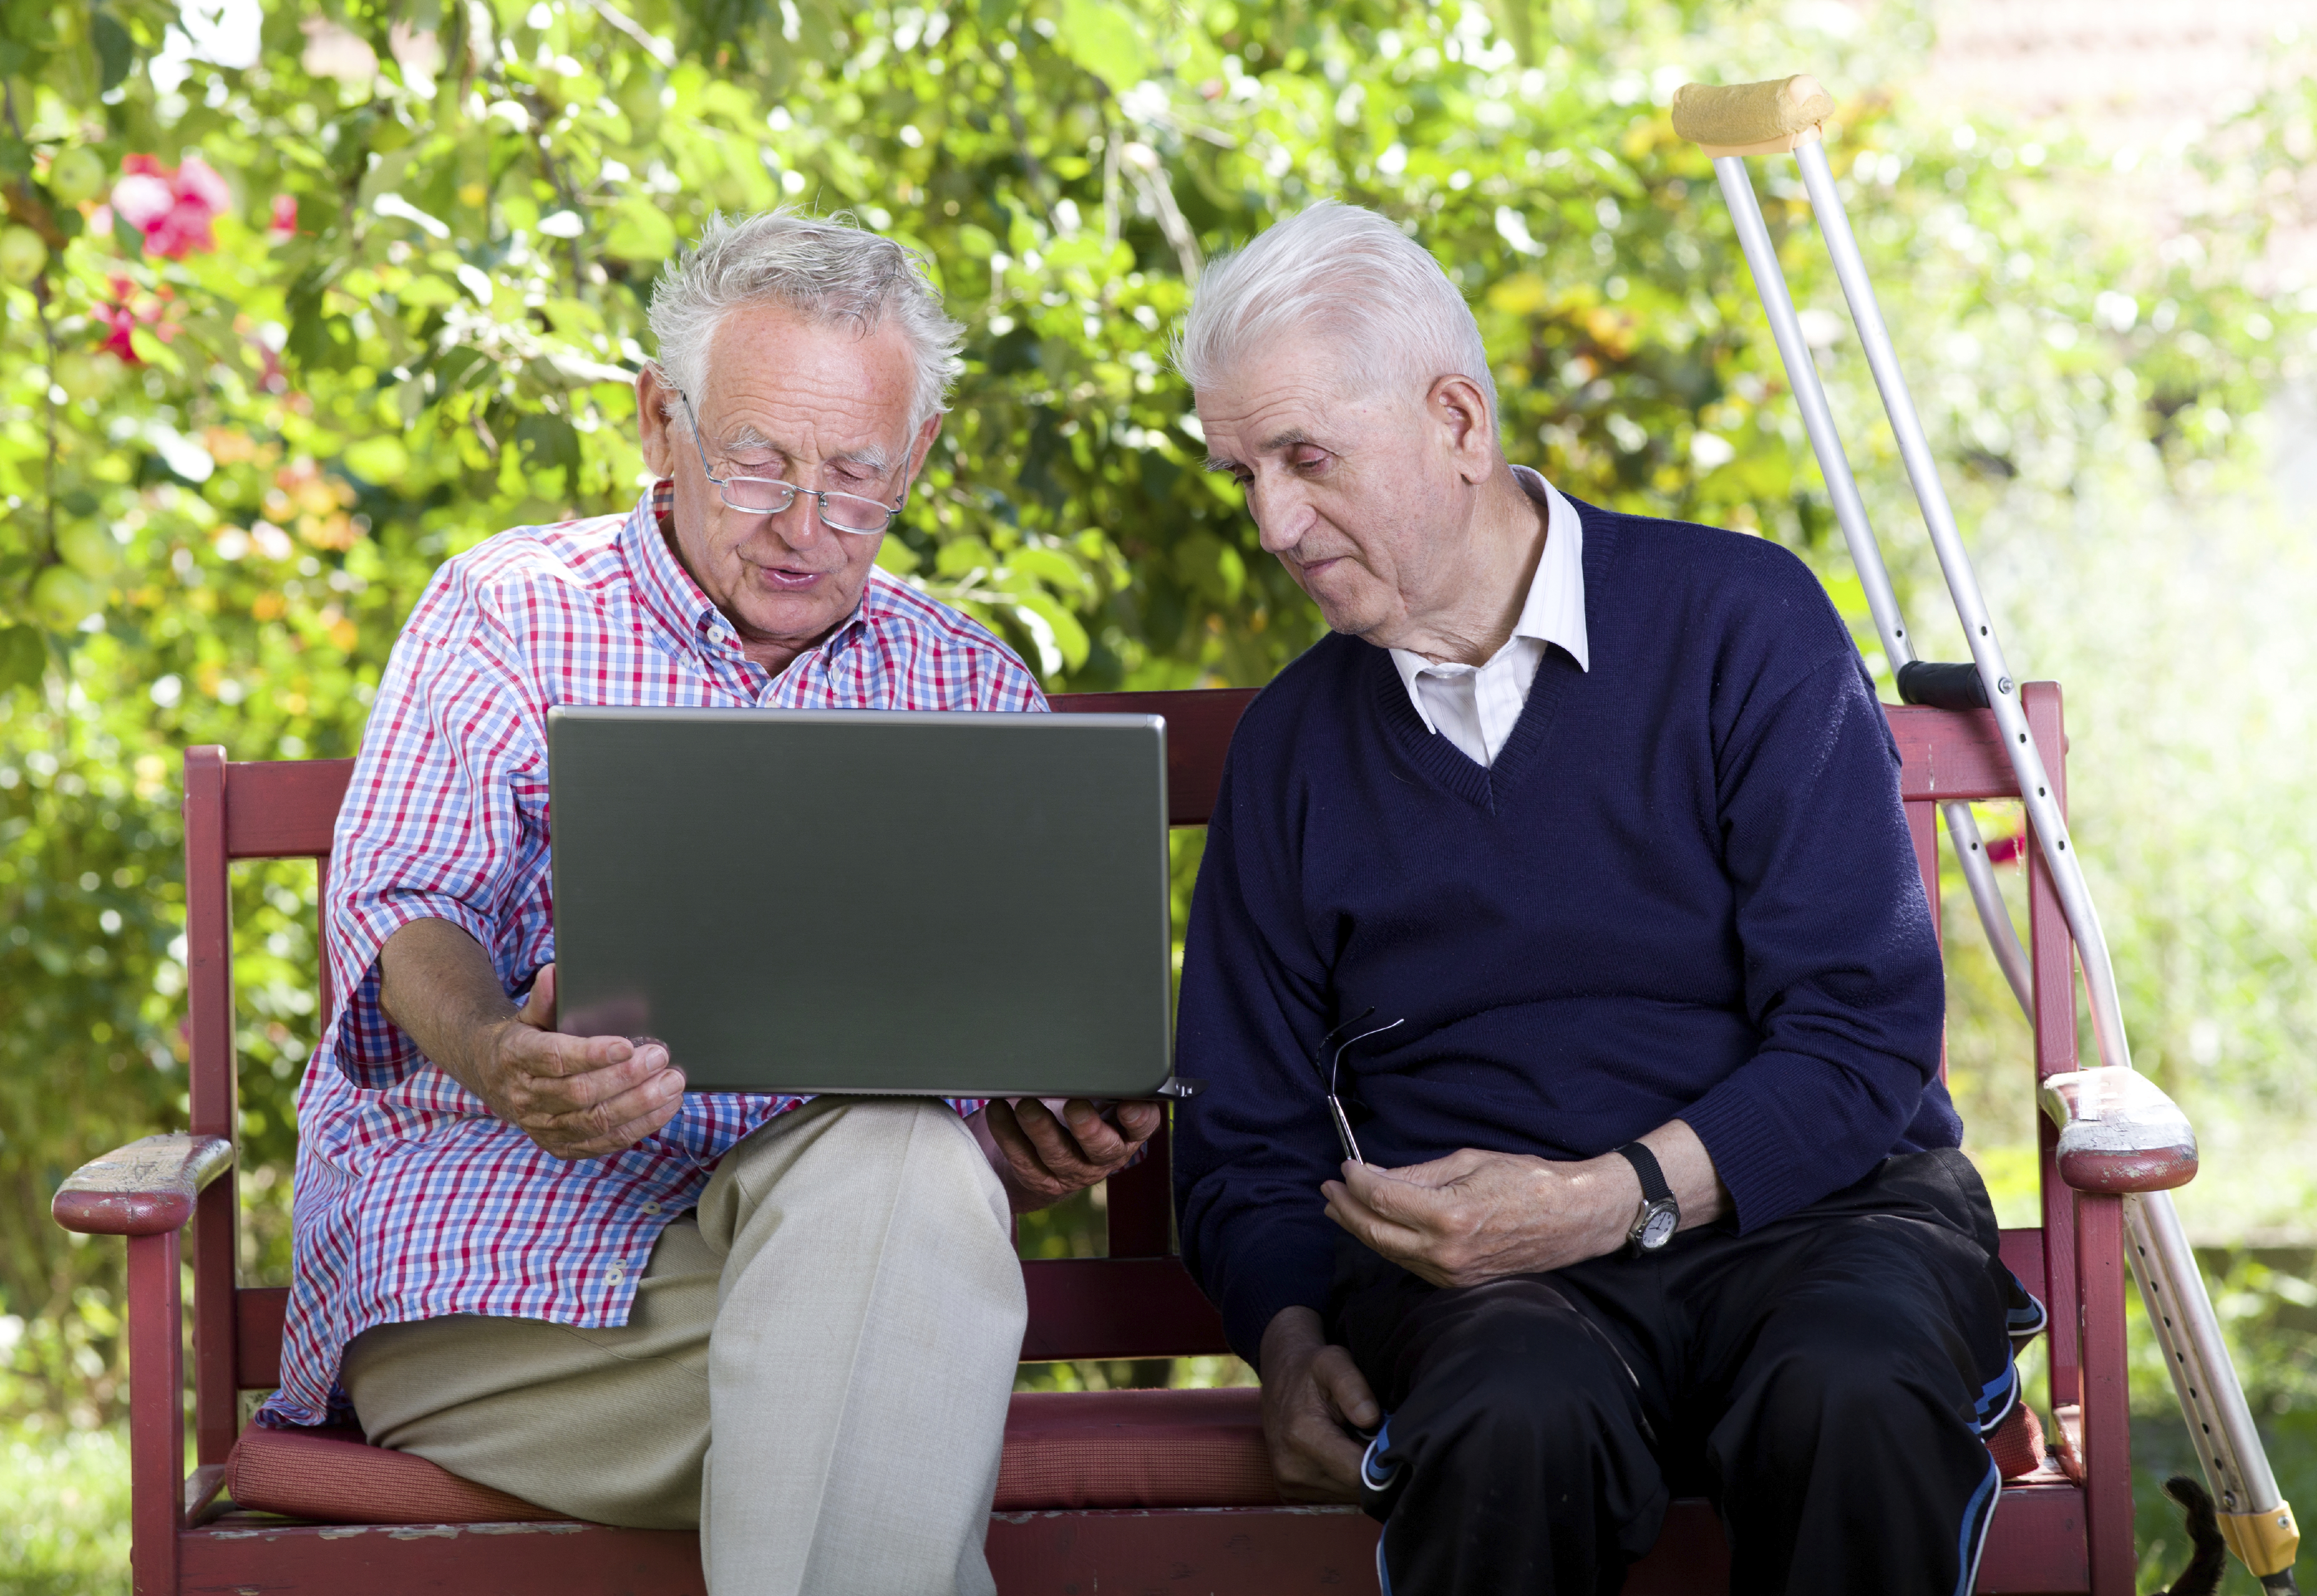 Most Rated Seniors Dating Online Sites No Subscription